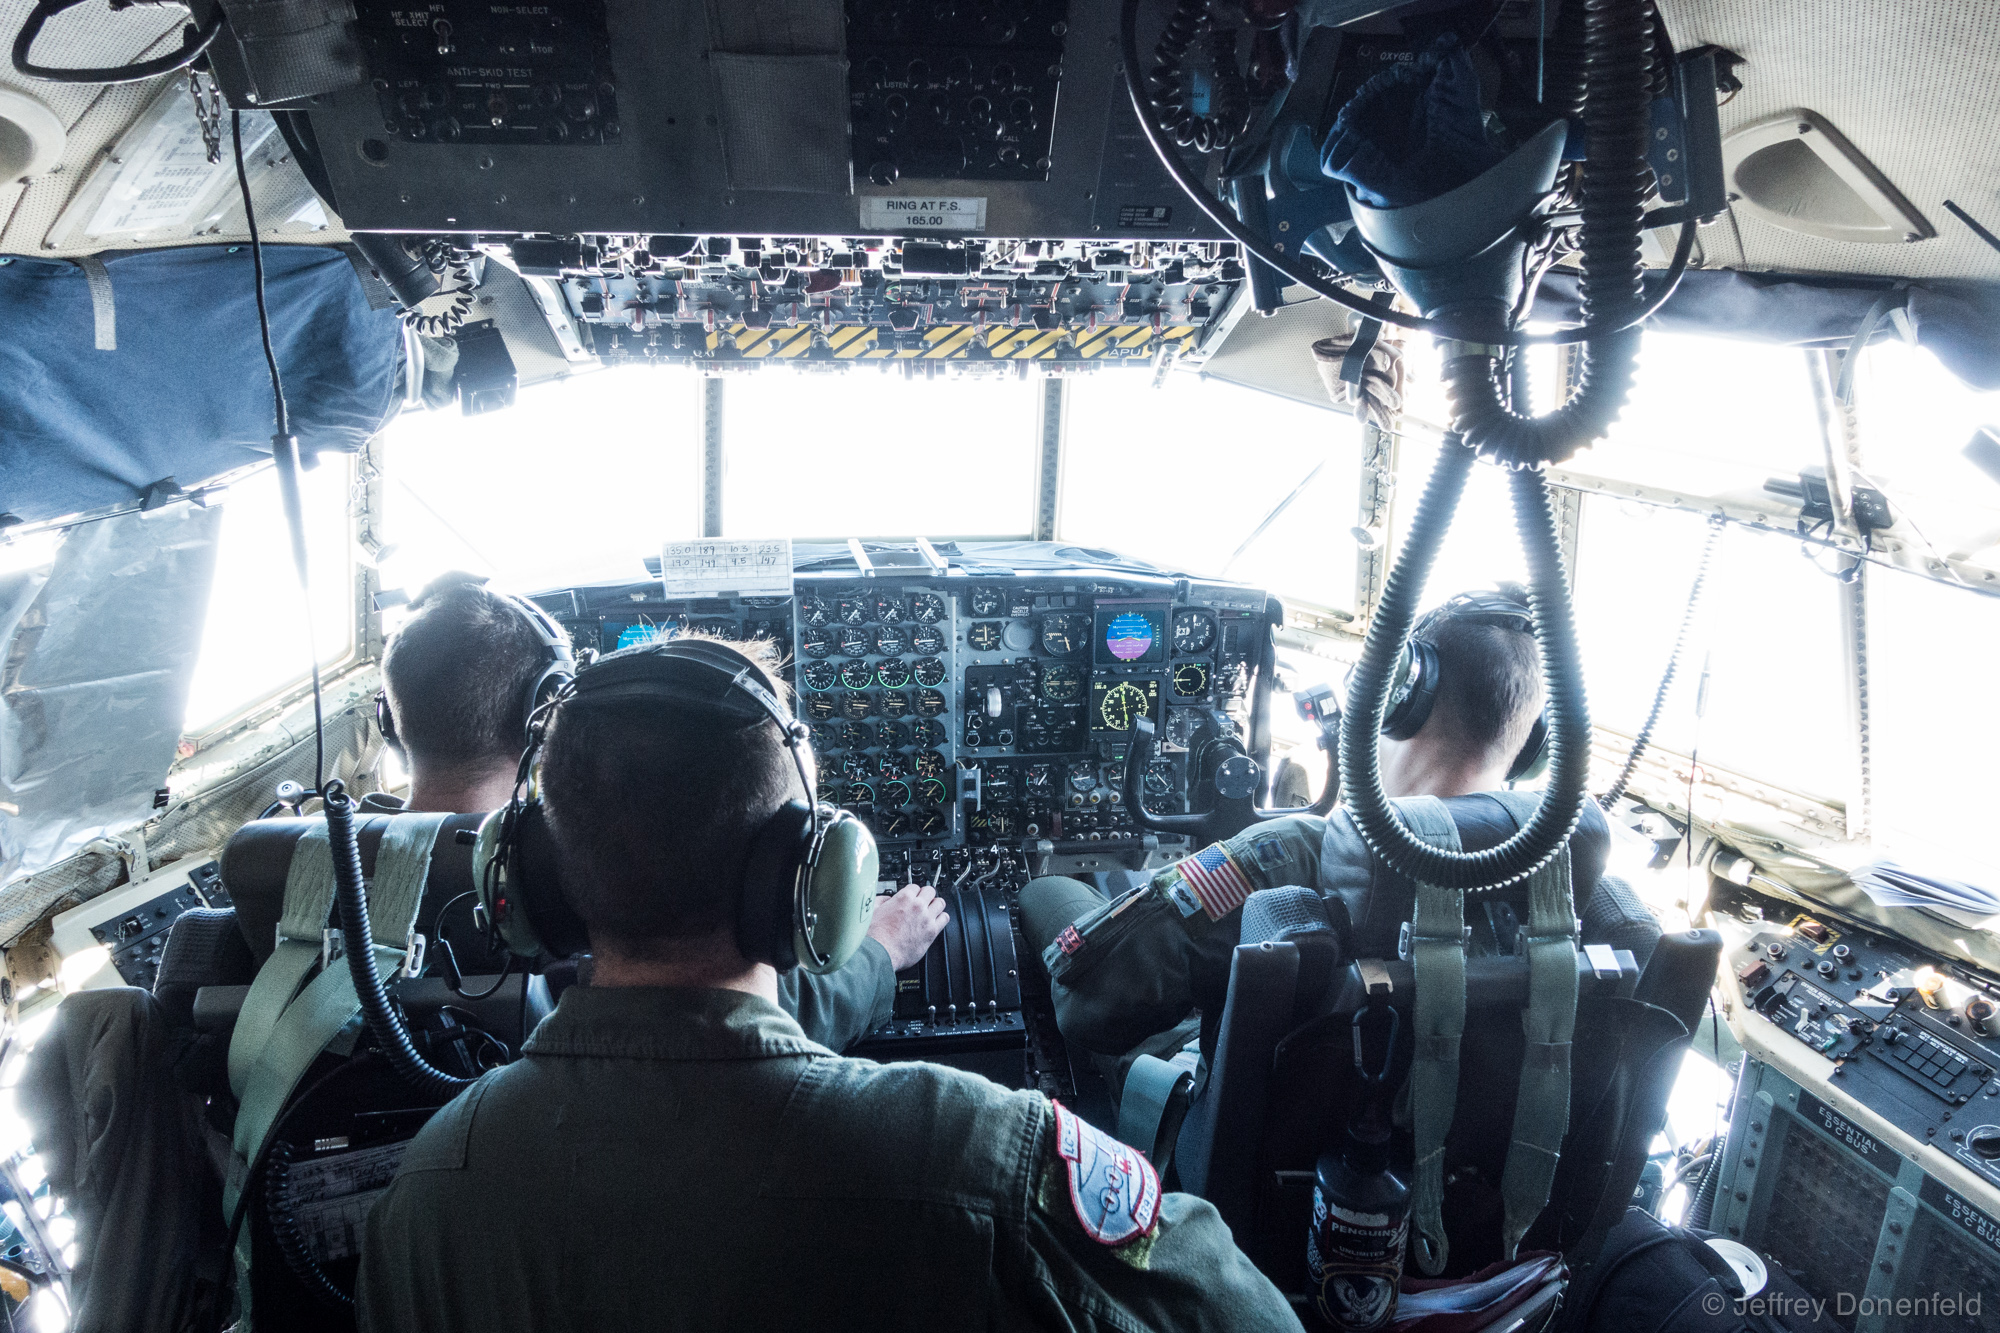 While we're in mid-flight, it's ok to go visit the cockpit - super cool!